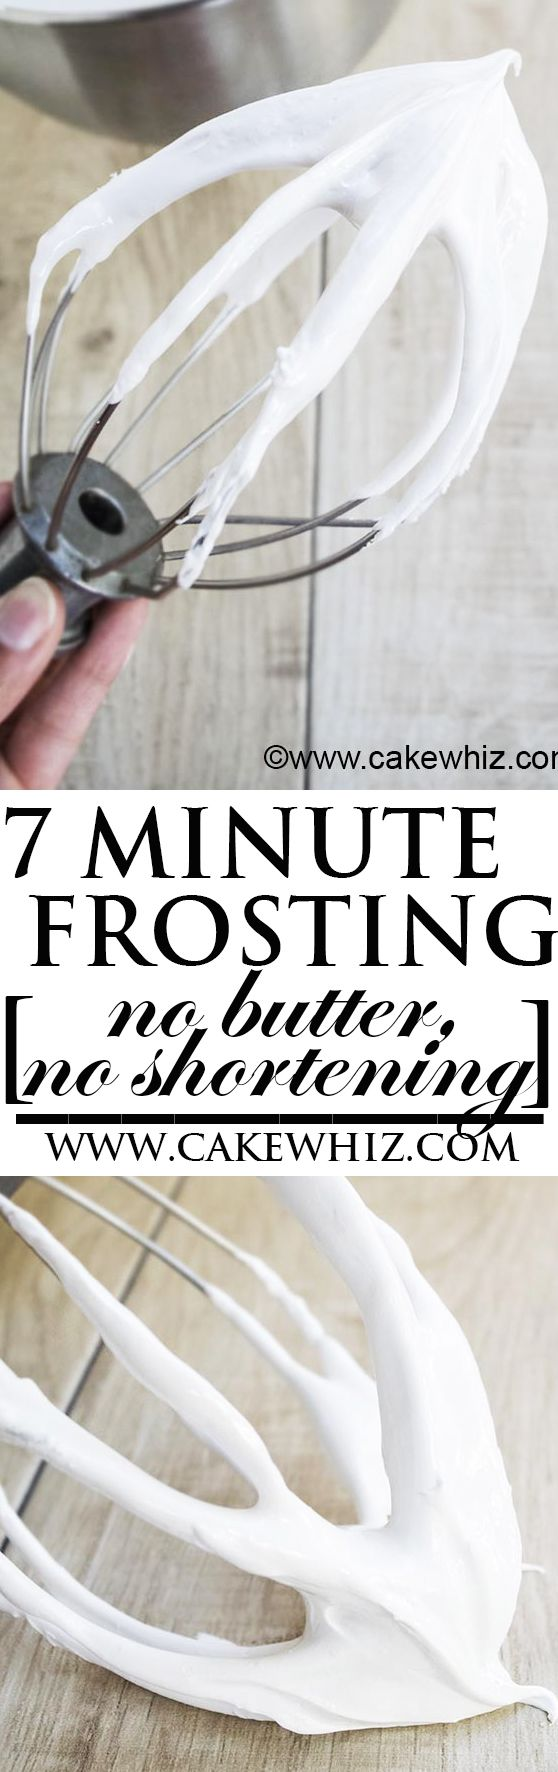 This easy and old fashioned SEVEN MINUTE FROSTING recipe yields a really white, soft and fluffy icing that tastes like marshmallows. Made with no butter and no shortening! Great for icing cakes and cupcakes! From cakewhiz.com